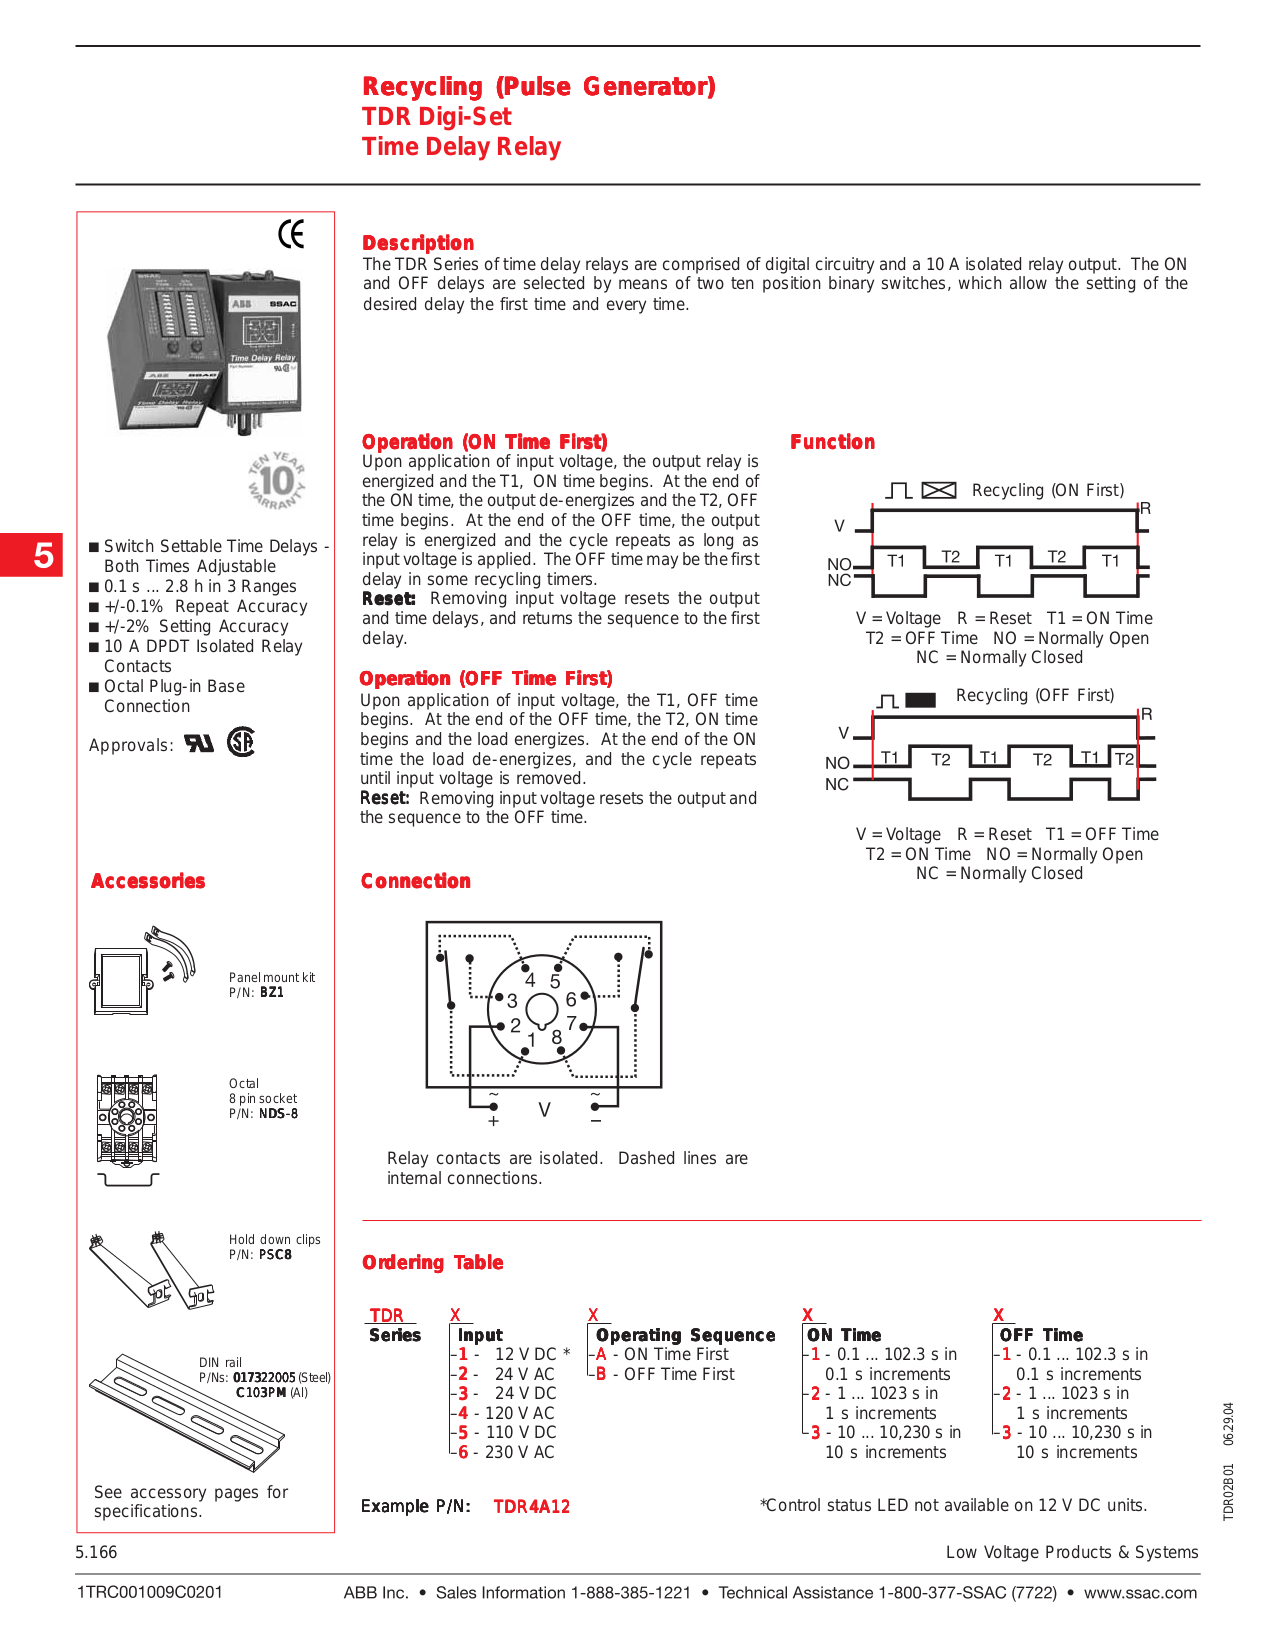 Pdf Manual For Viking Other Tdr 1 Time Delay Relays 12 Volt Off Relay Page Preview